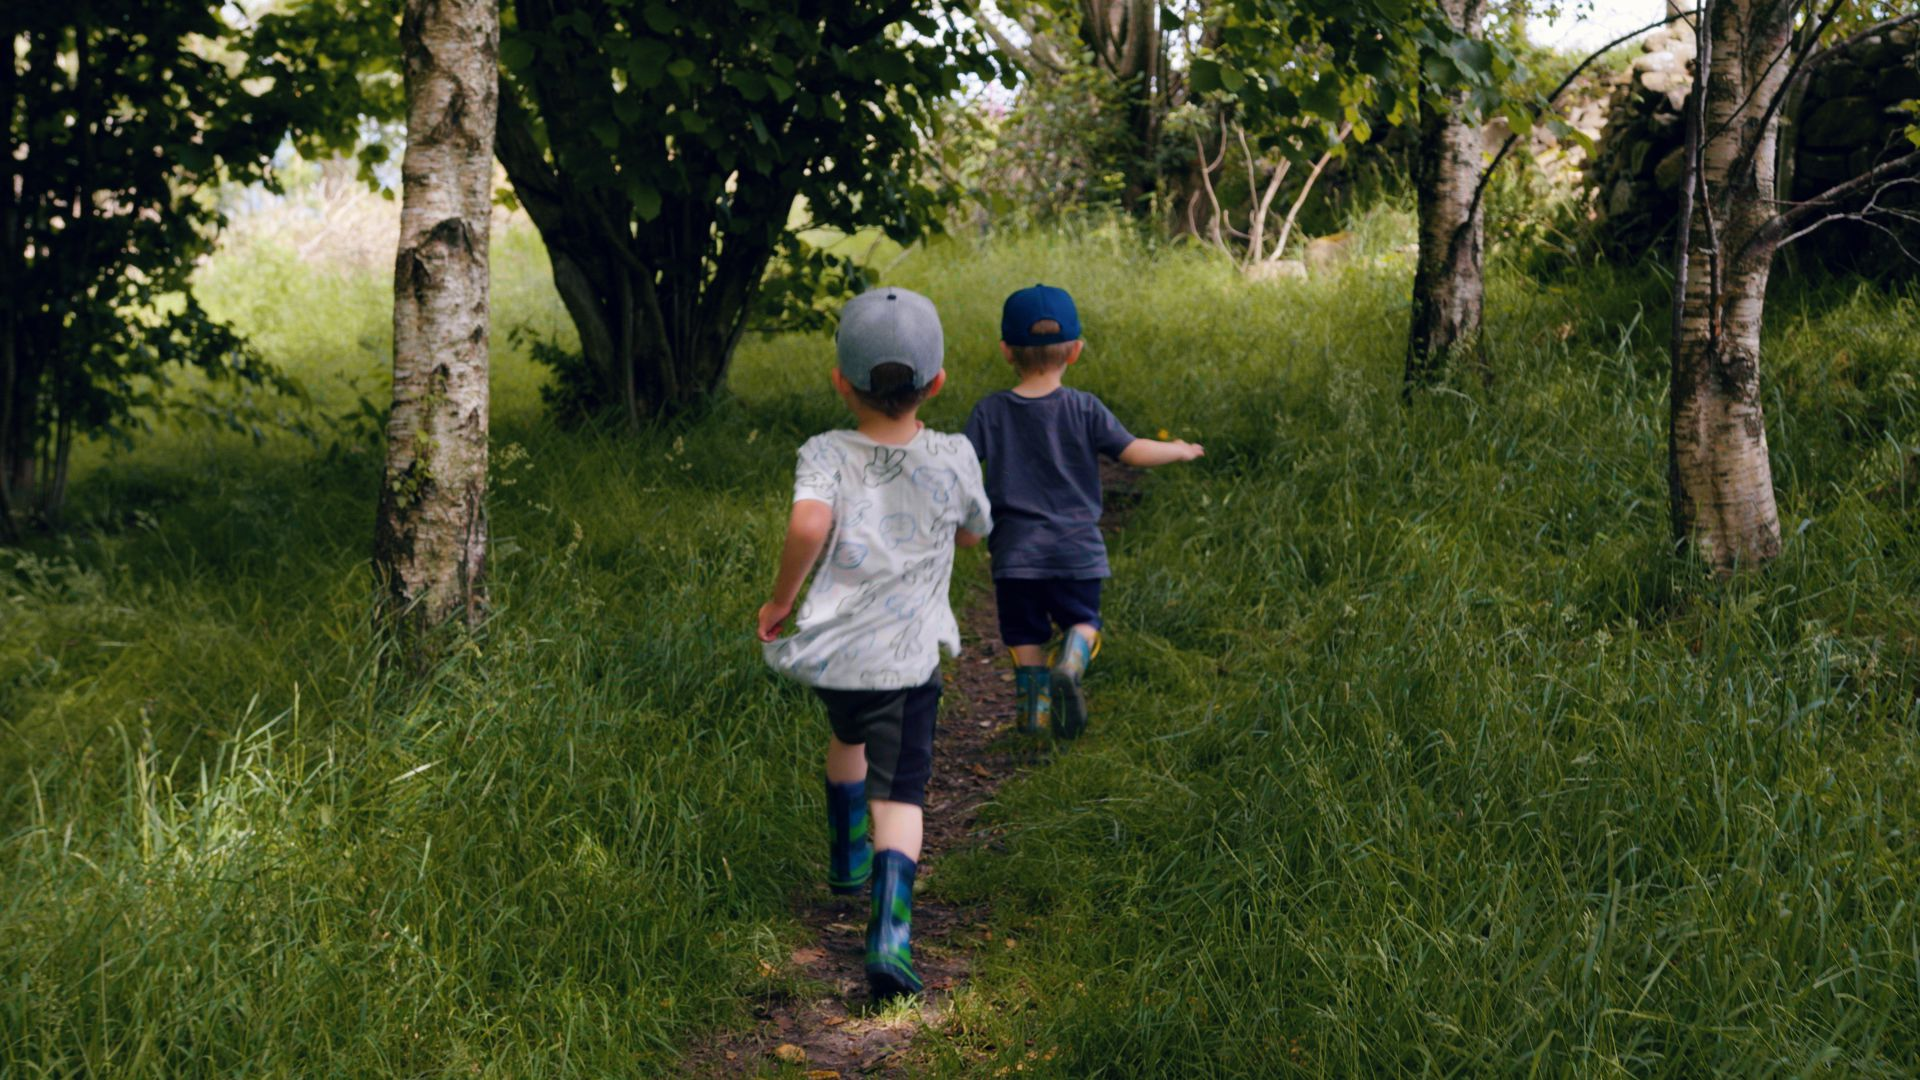 Two young boys running through a field